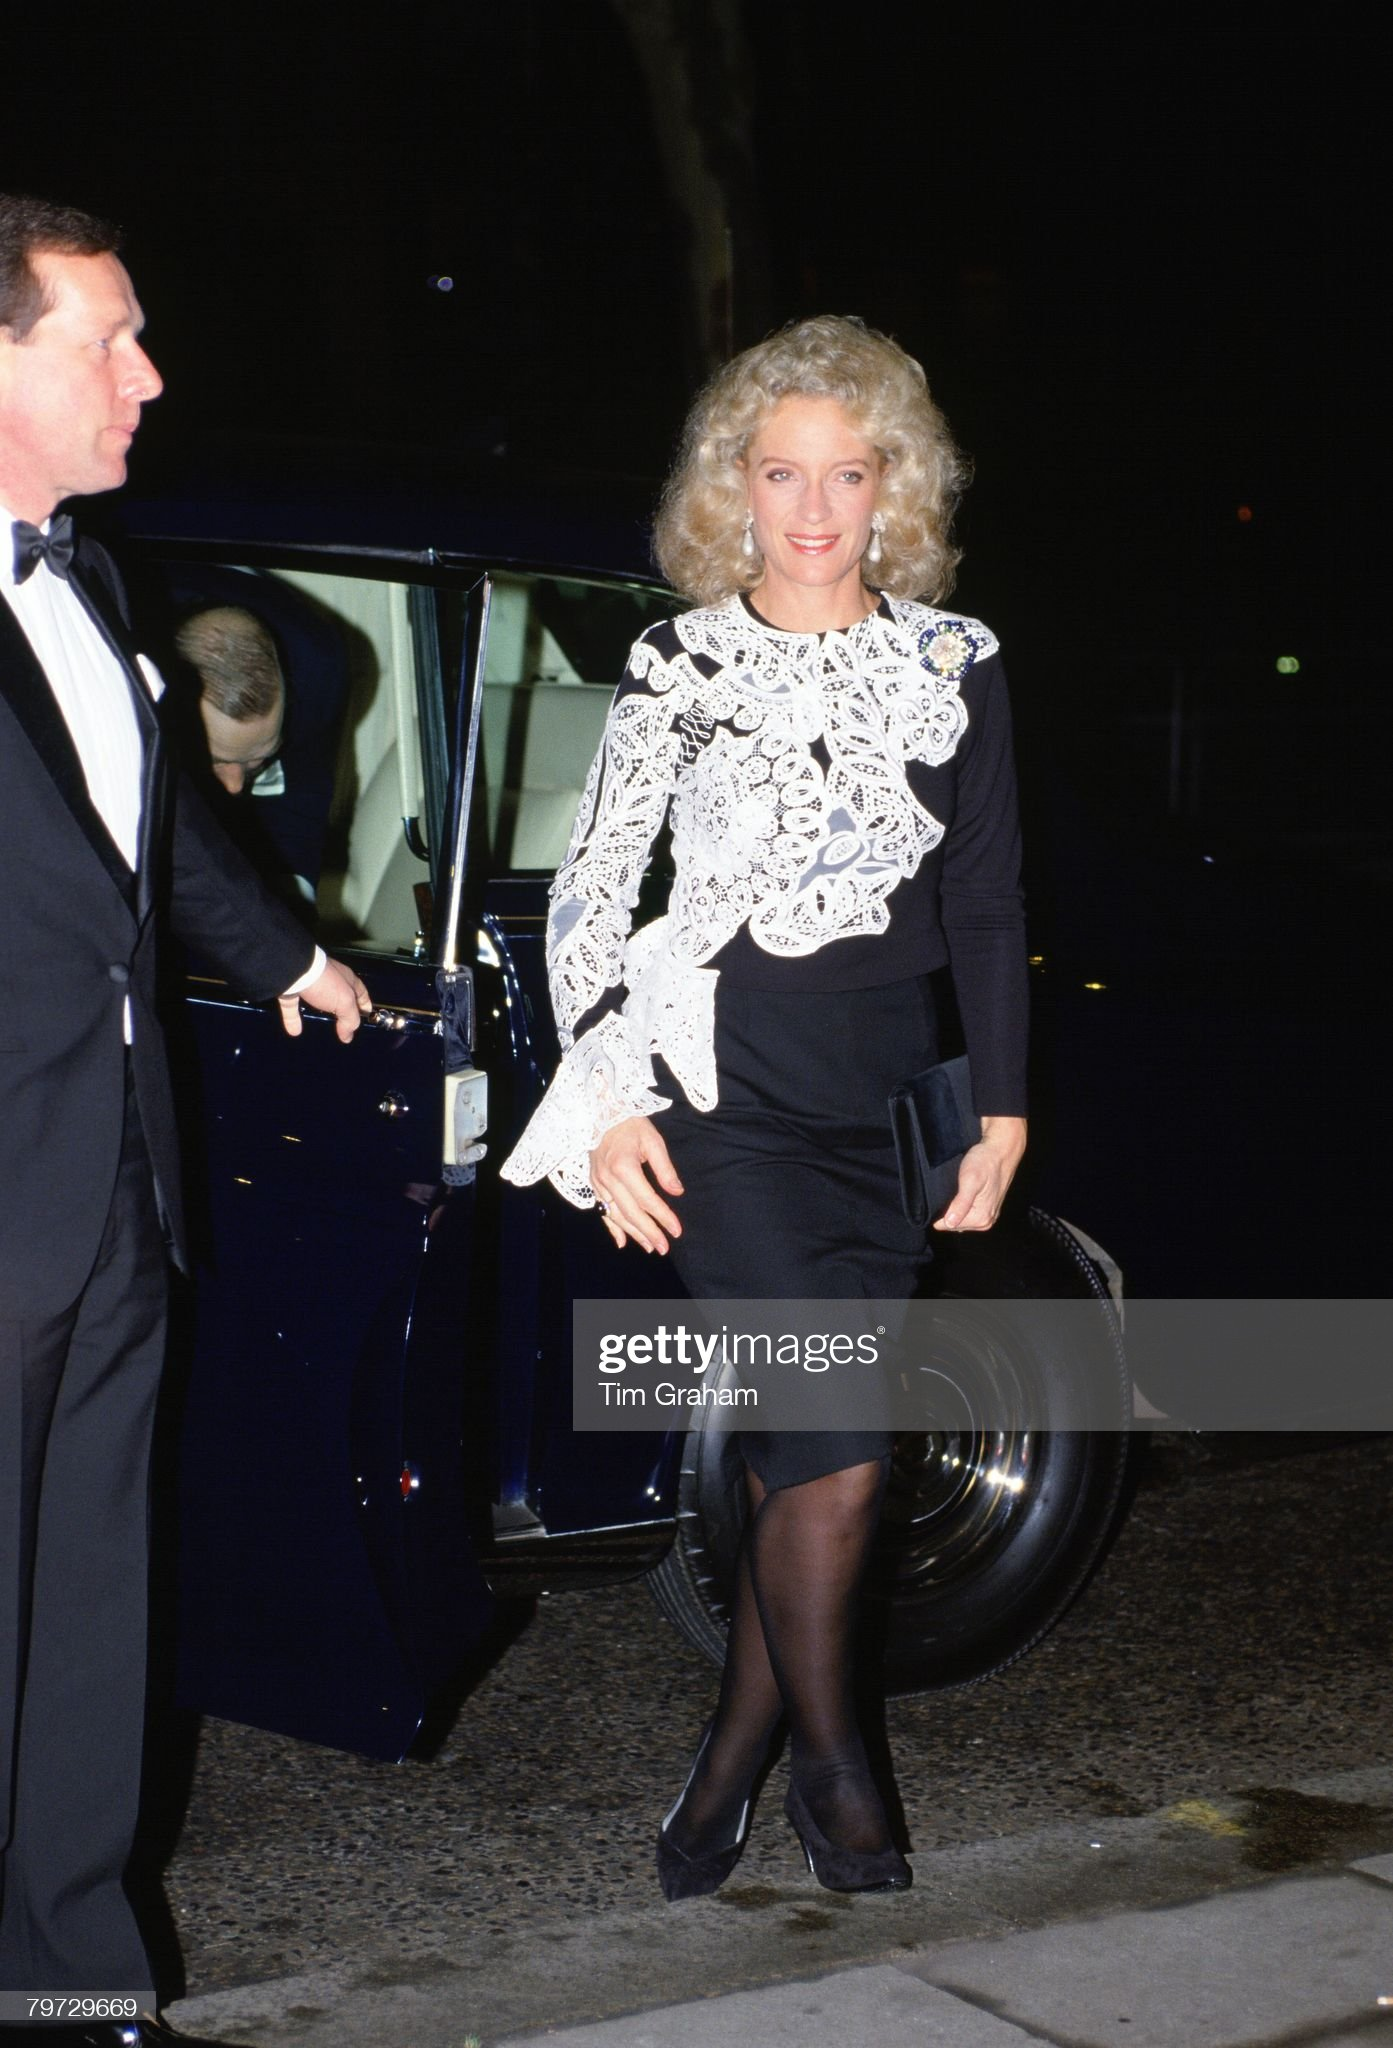 Princess Michael of Kent attends a gala performance of 'The : News Photo